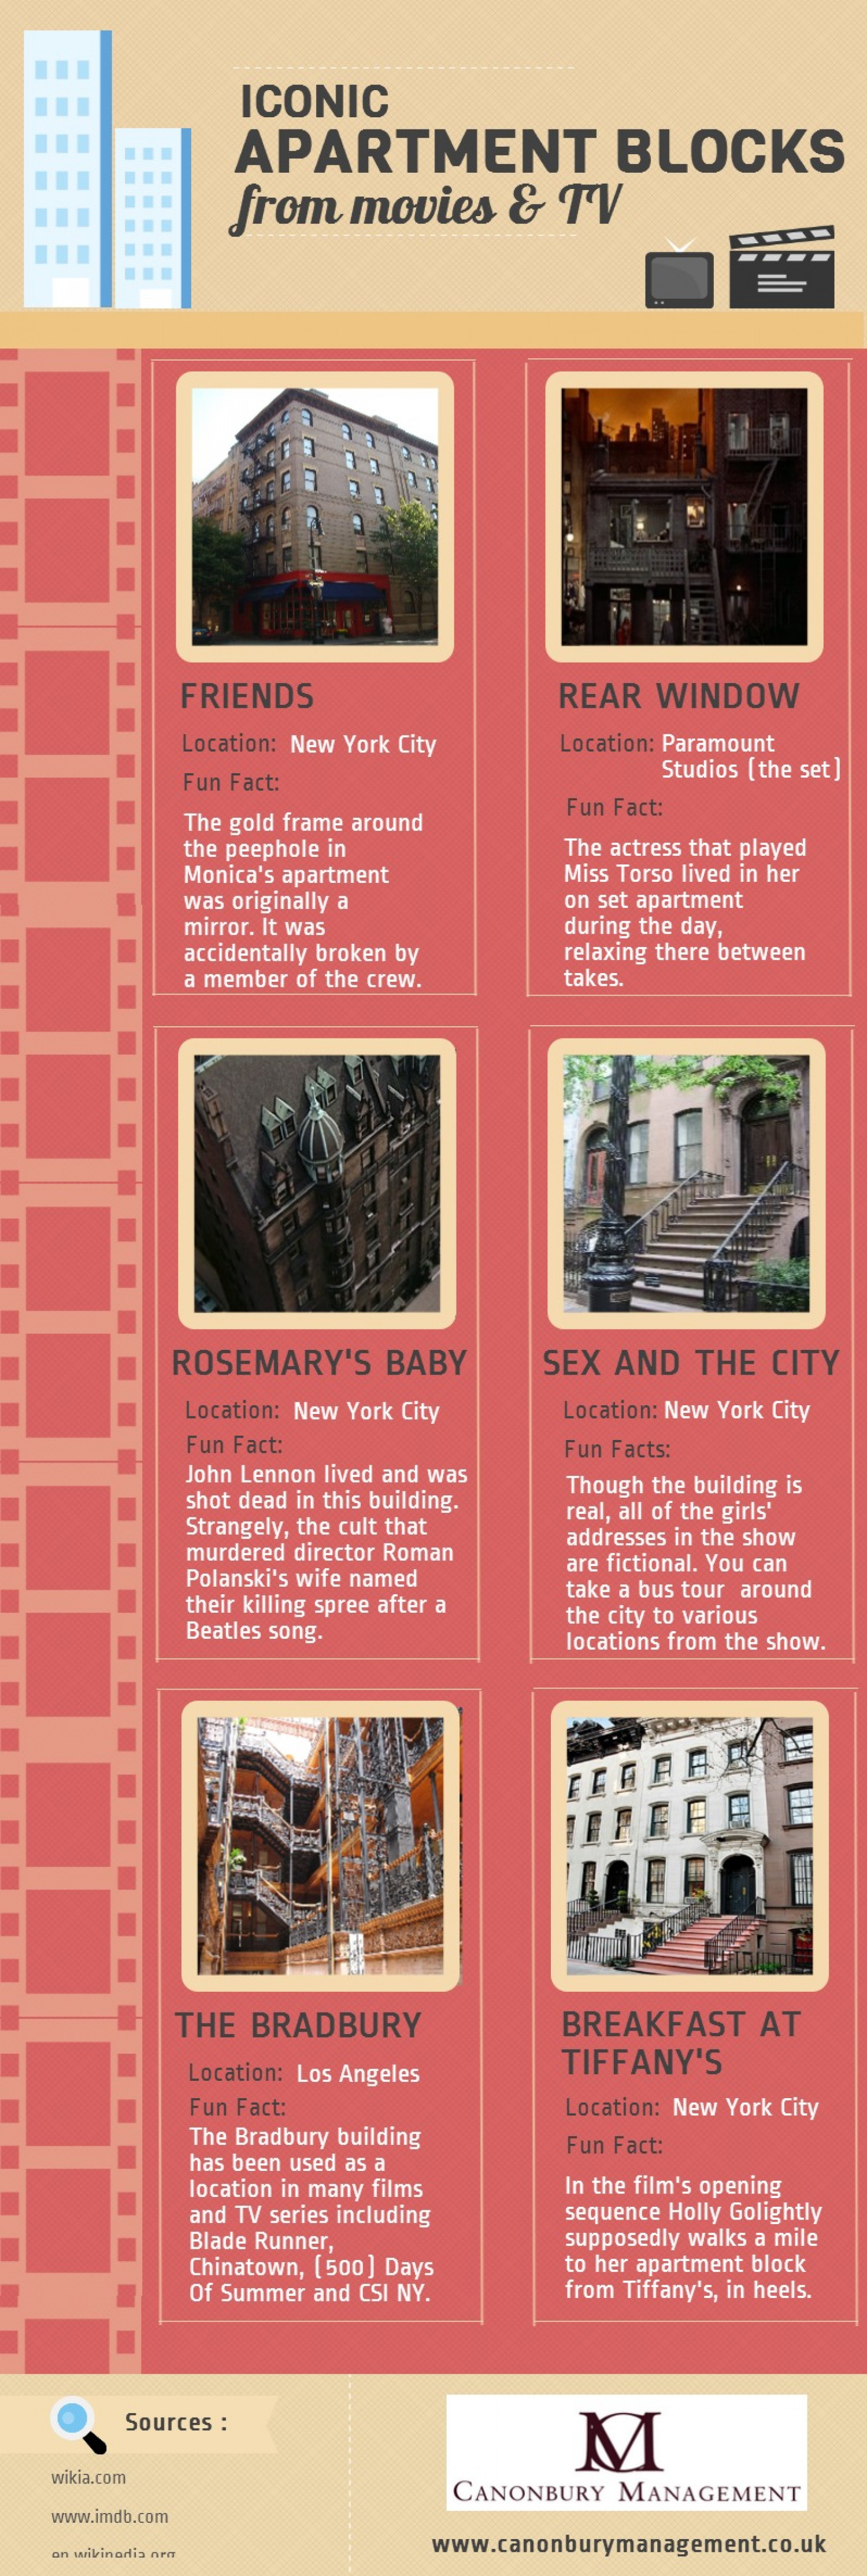 Iconic Apartment Blocks from Movies & TV Infographic